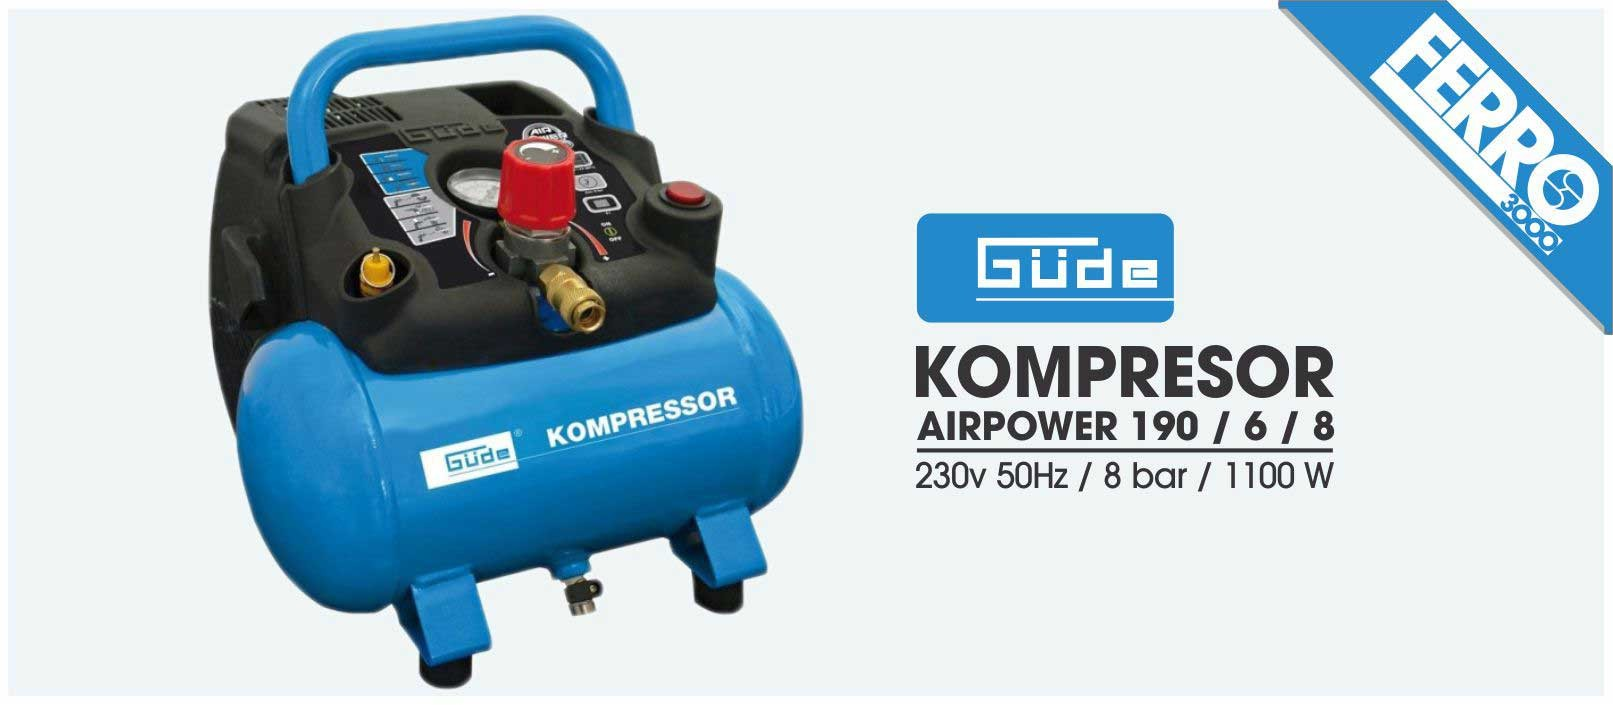 Kompresor Air Power